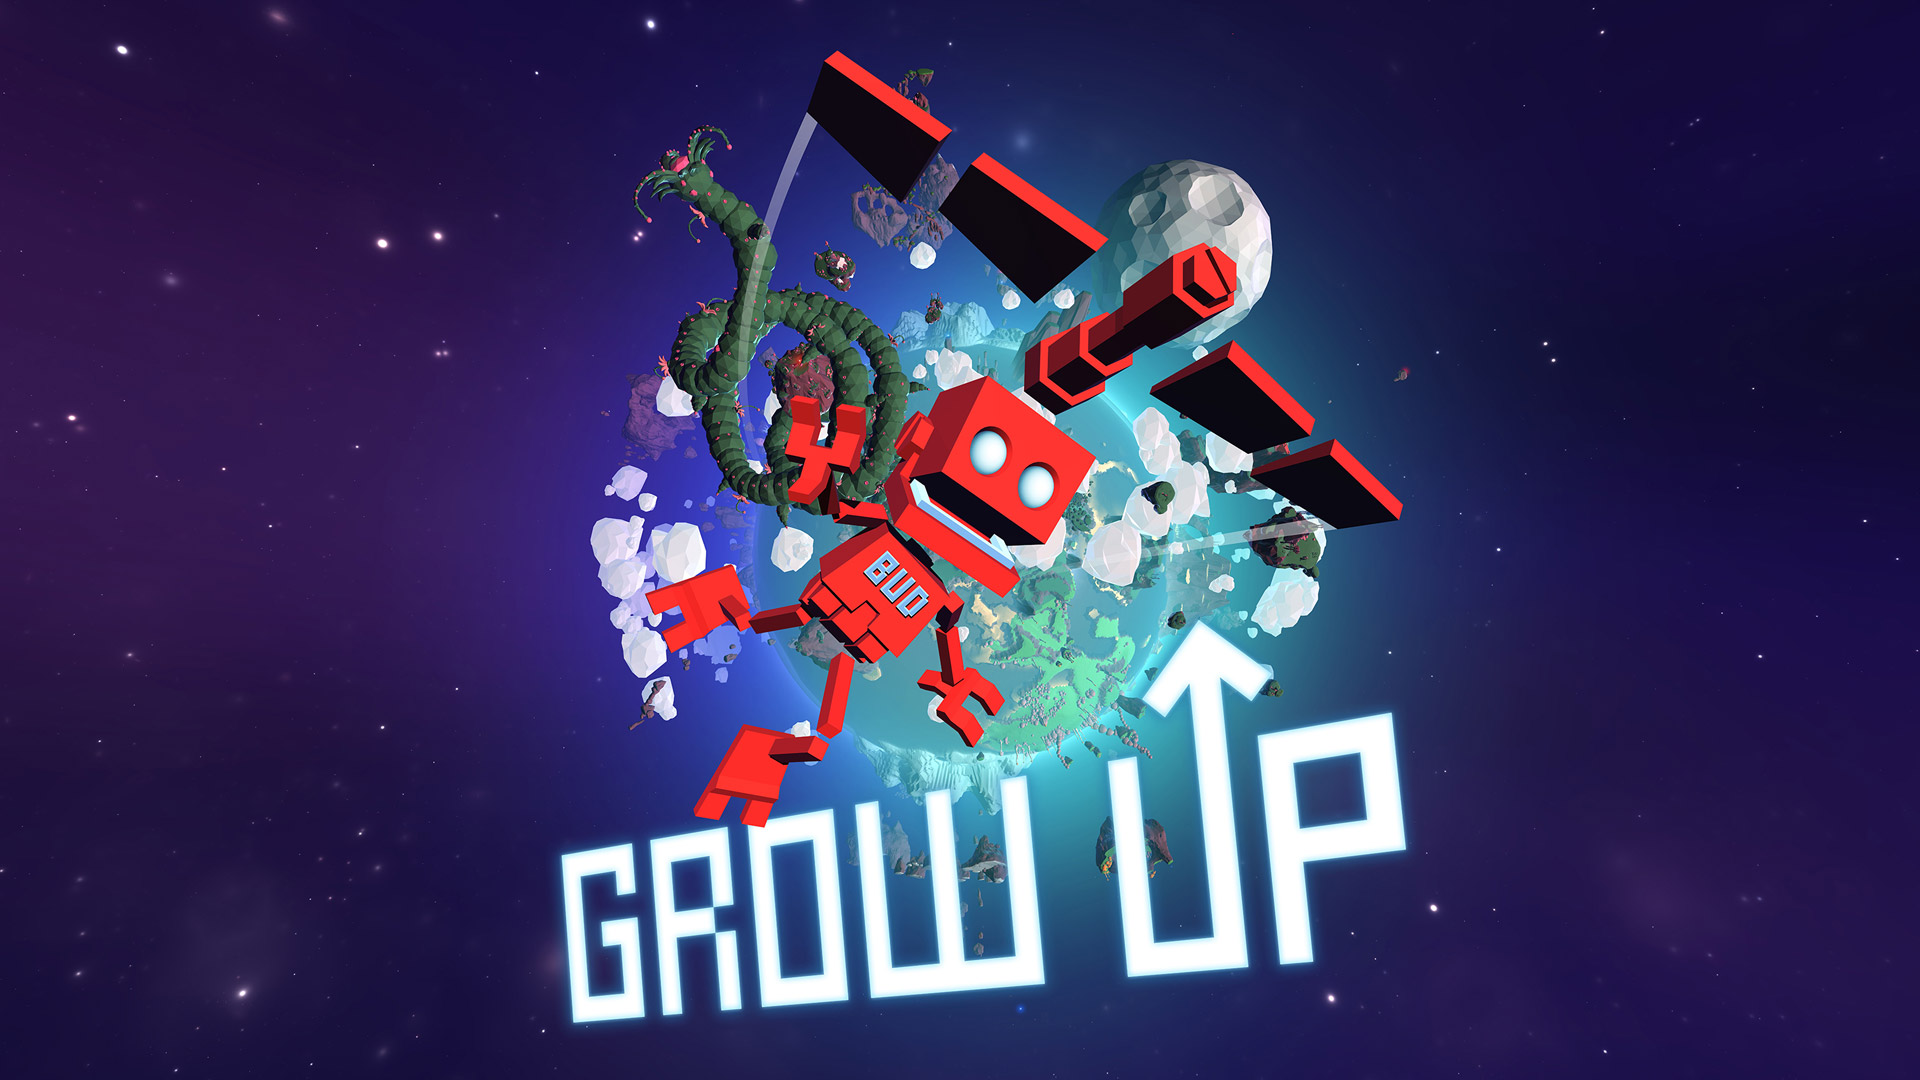 Grow up full hd wallpaper and background image 1920x1080 for Grow home wallpaper 1920x1080